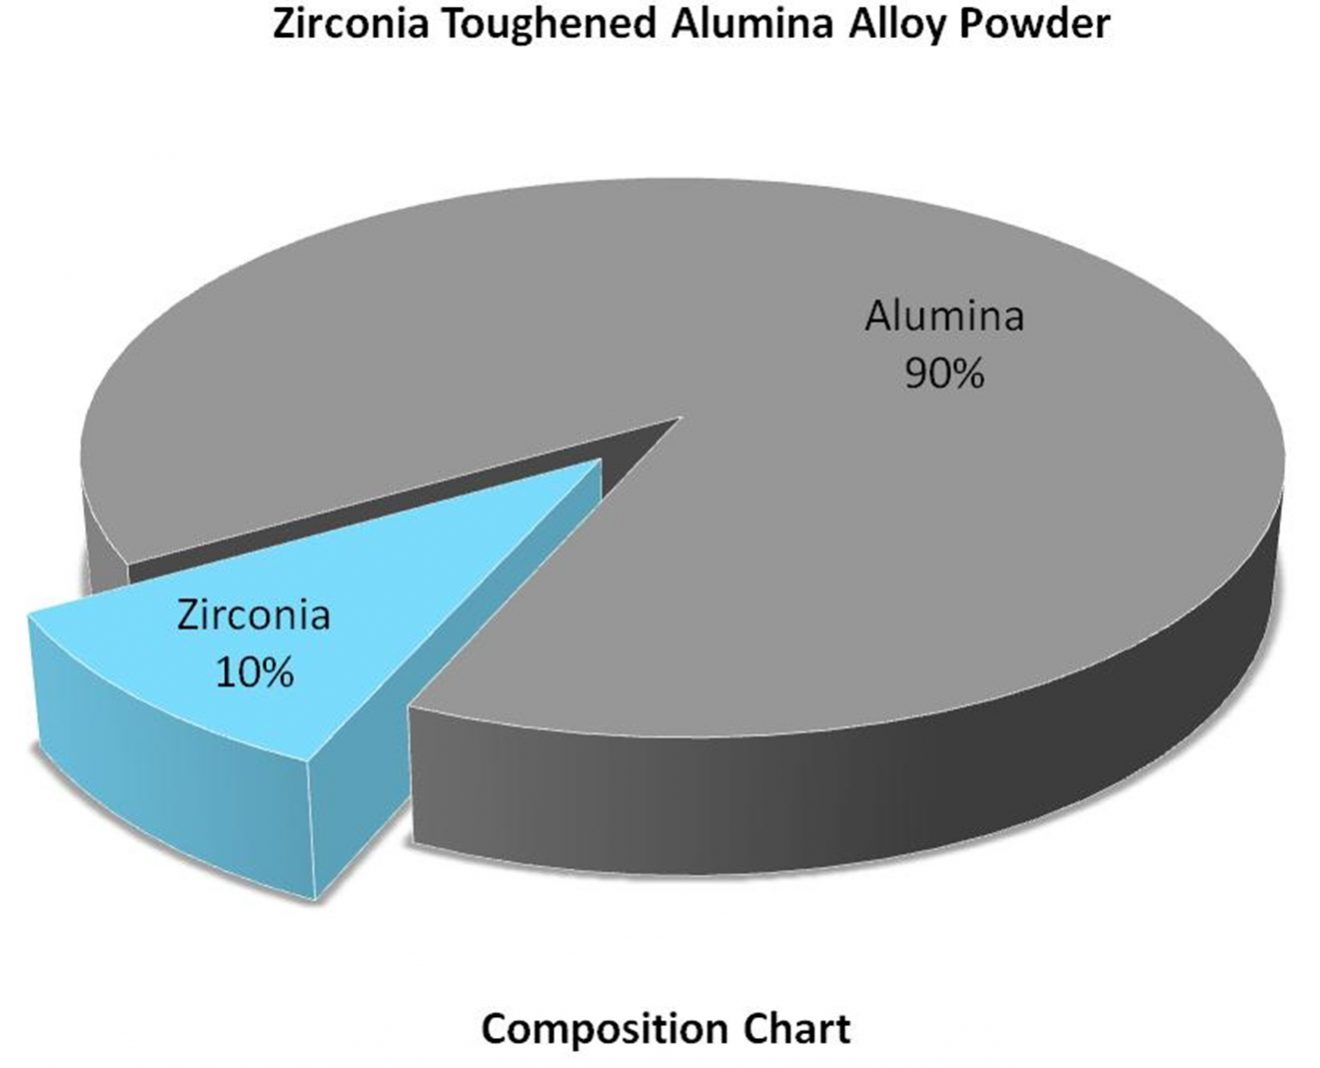 Composition Chart – Zr:Al2O3 Alloy Powder